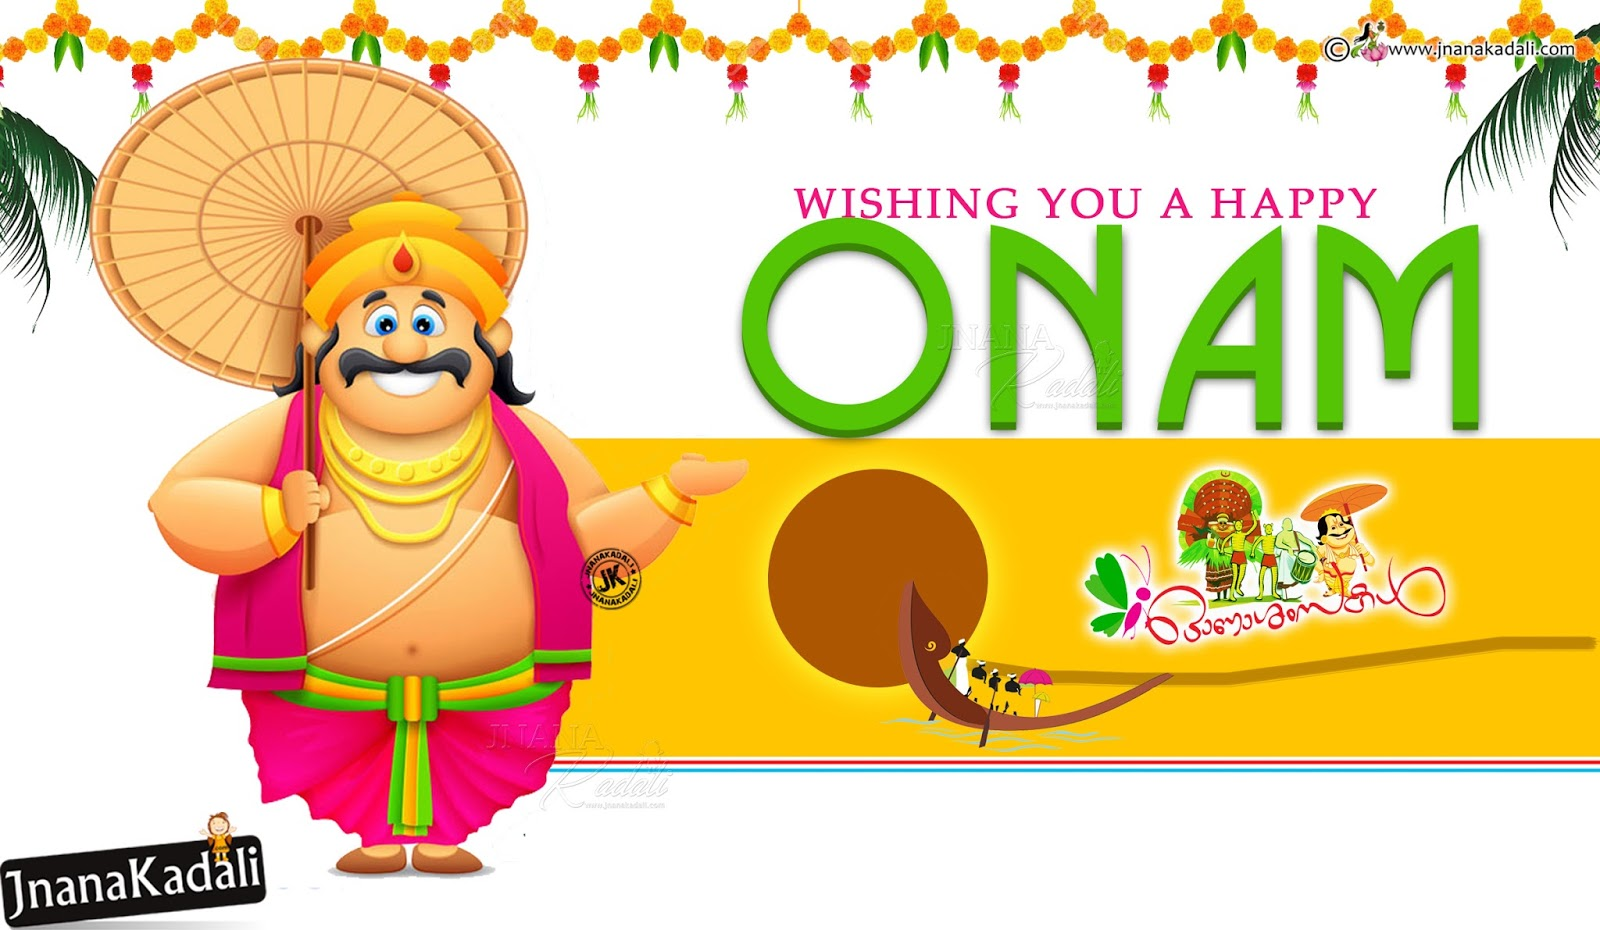 2017 advanced trending onam greetings with mahabali hd wallpapers happy onam quotes onam wallpapers greetings free download happy onam hd wallpapers kristyandbryce Image collections